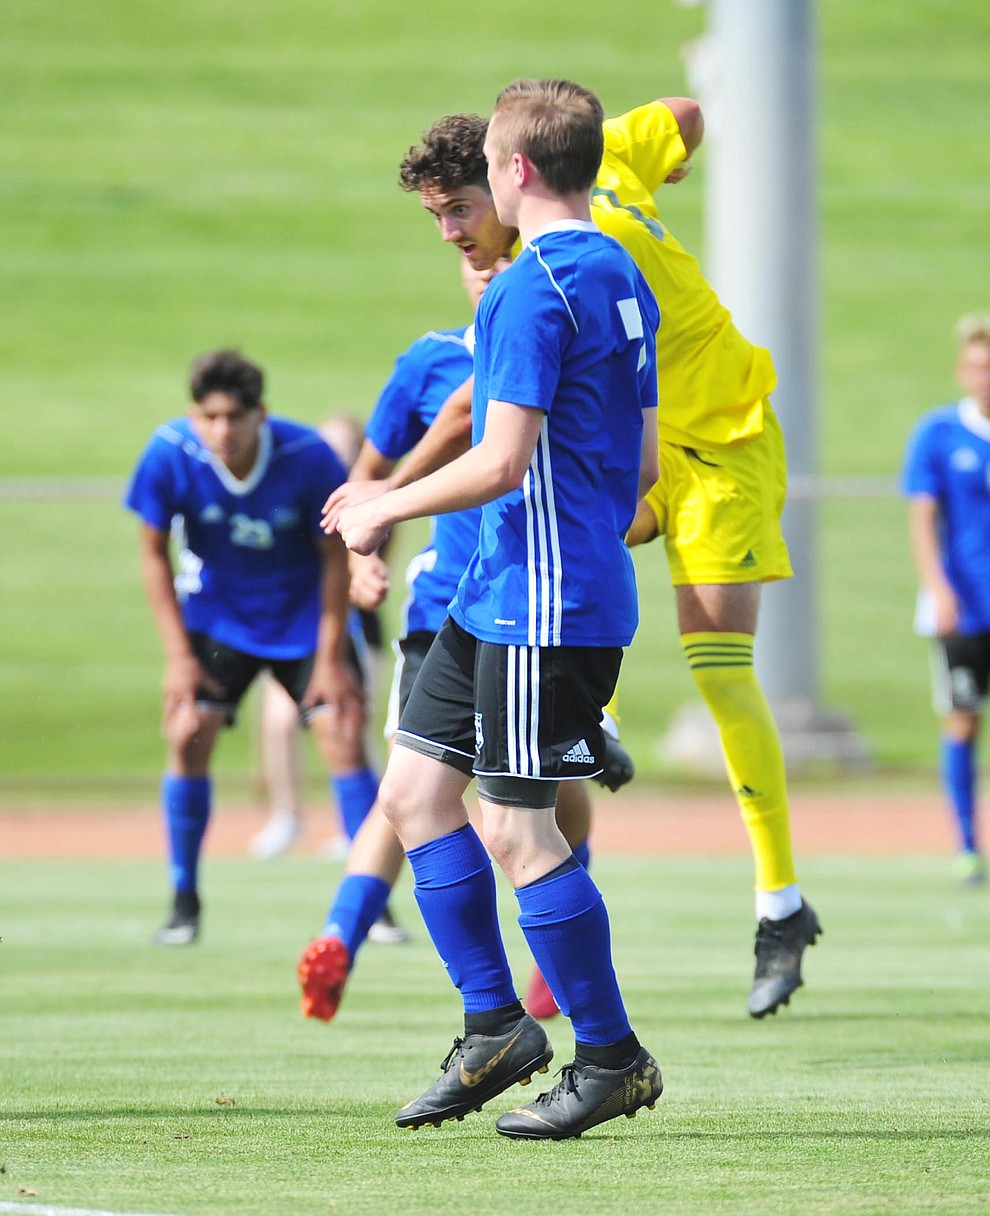 Yavapai's Tucker Fenton scores the second goal as the Roughriders host South Mountain Community College Thursday, August 22, 2019, in Prescott Valley. (Les Stukenberg/Courier)